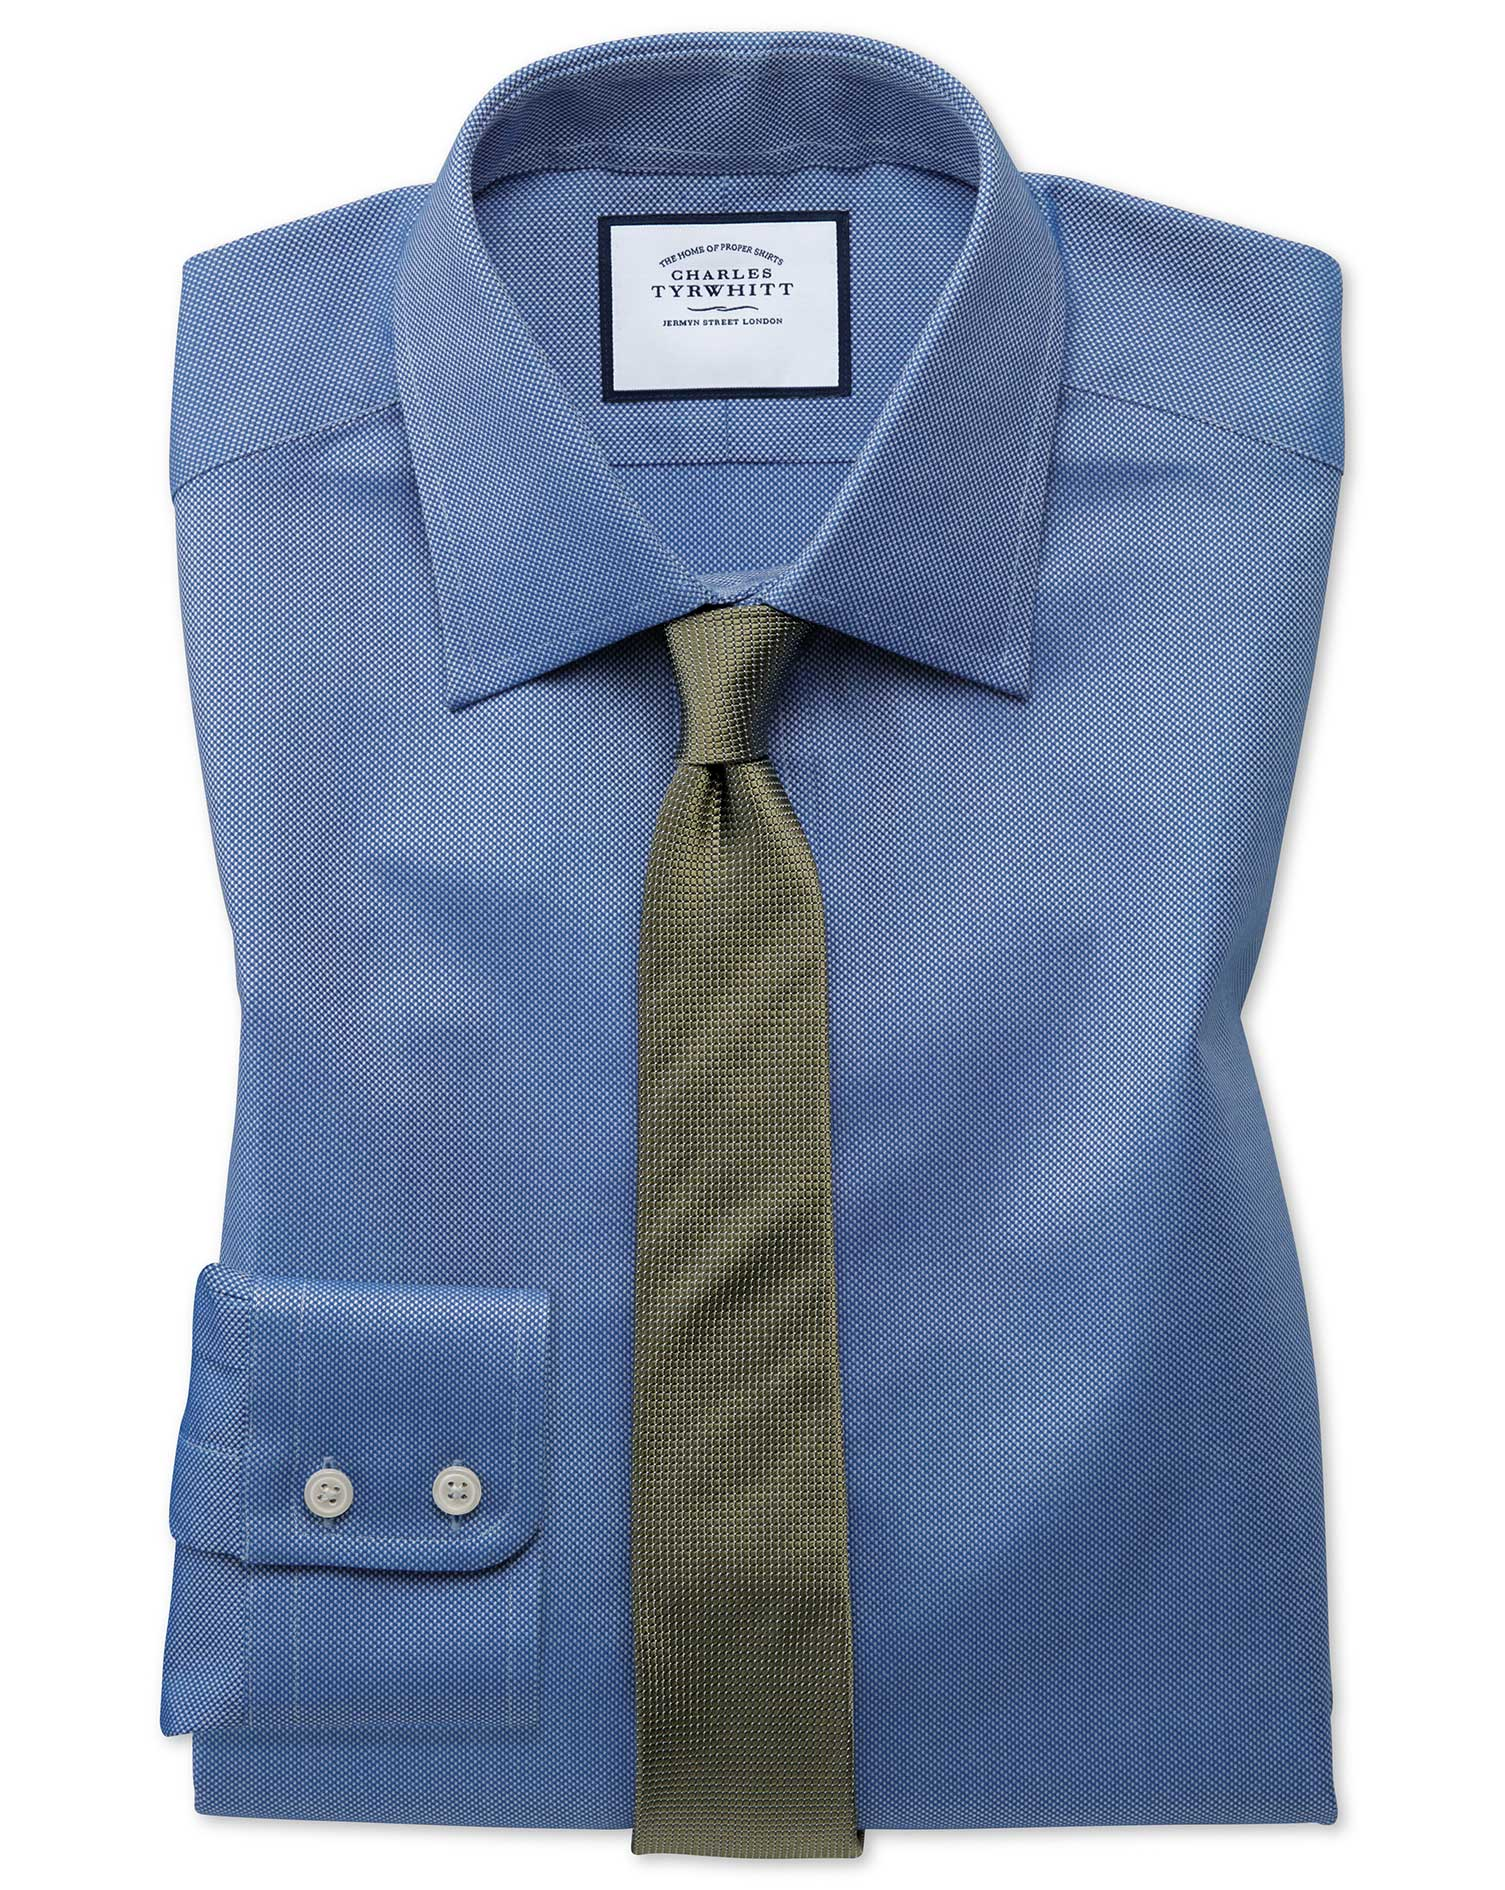 Extra Slim Fit Egyptian Cotton Royal Oxford Royal Formal Shirt Single Cuff Size 14.5/32 by Charles T